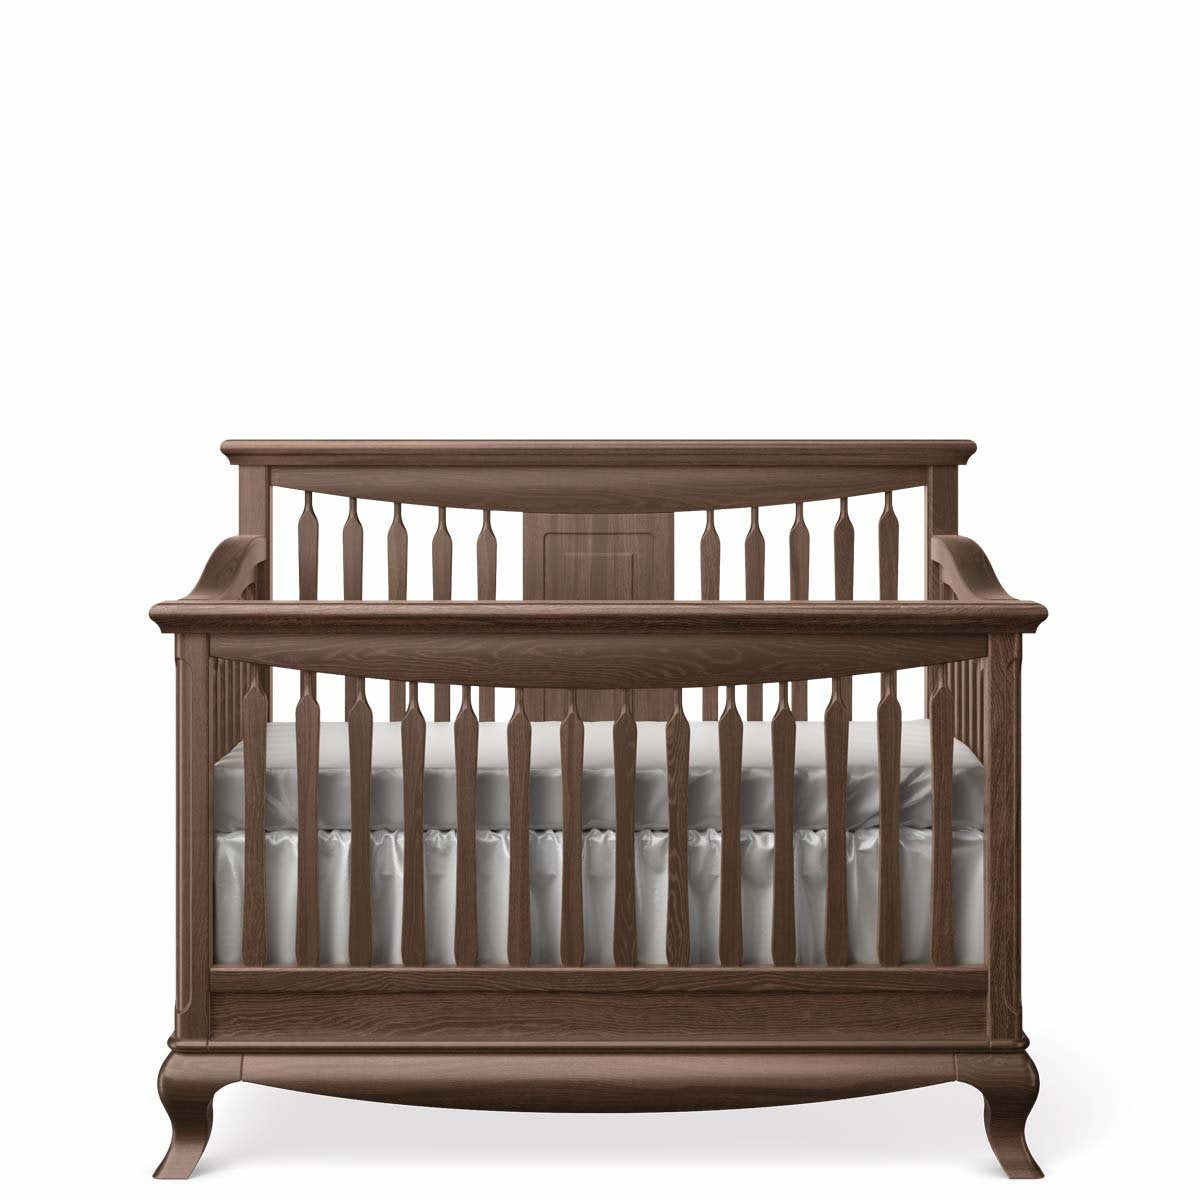 Romina Antonio Open Back Convertible Crib